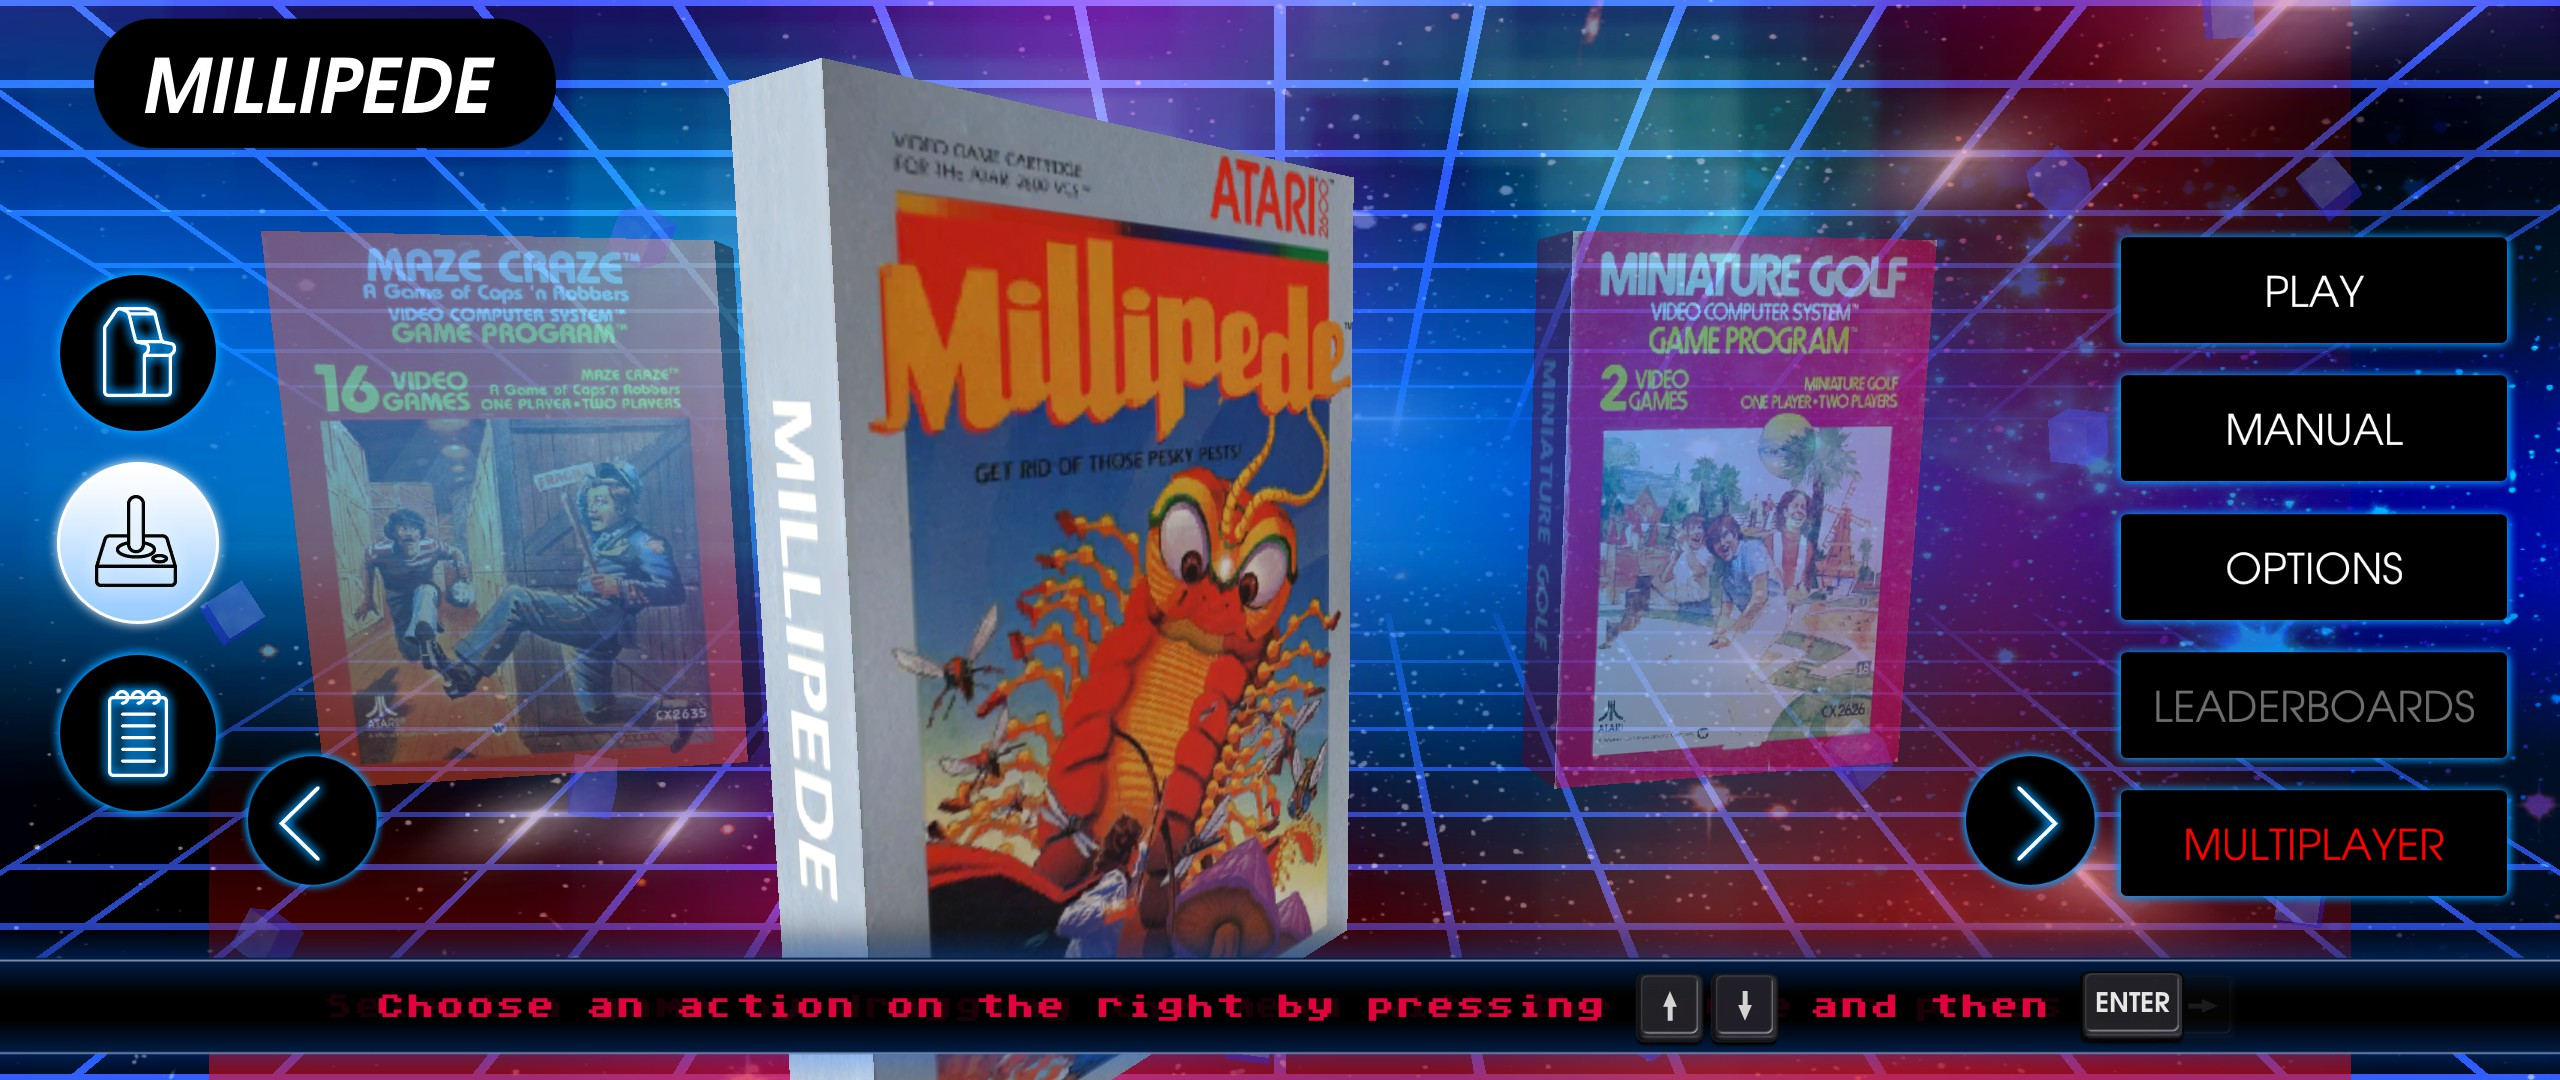 Press Release: Atari and AtGames Strengthen Strategic Partnership to Expand Physical and Digital Distribution